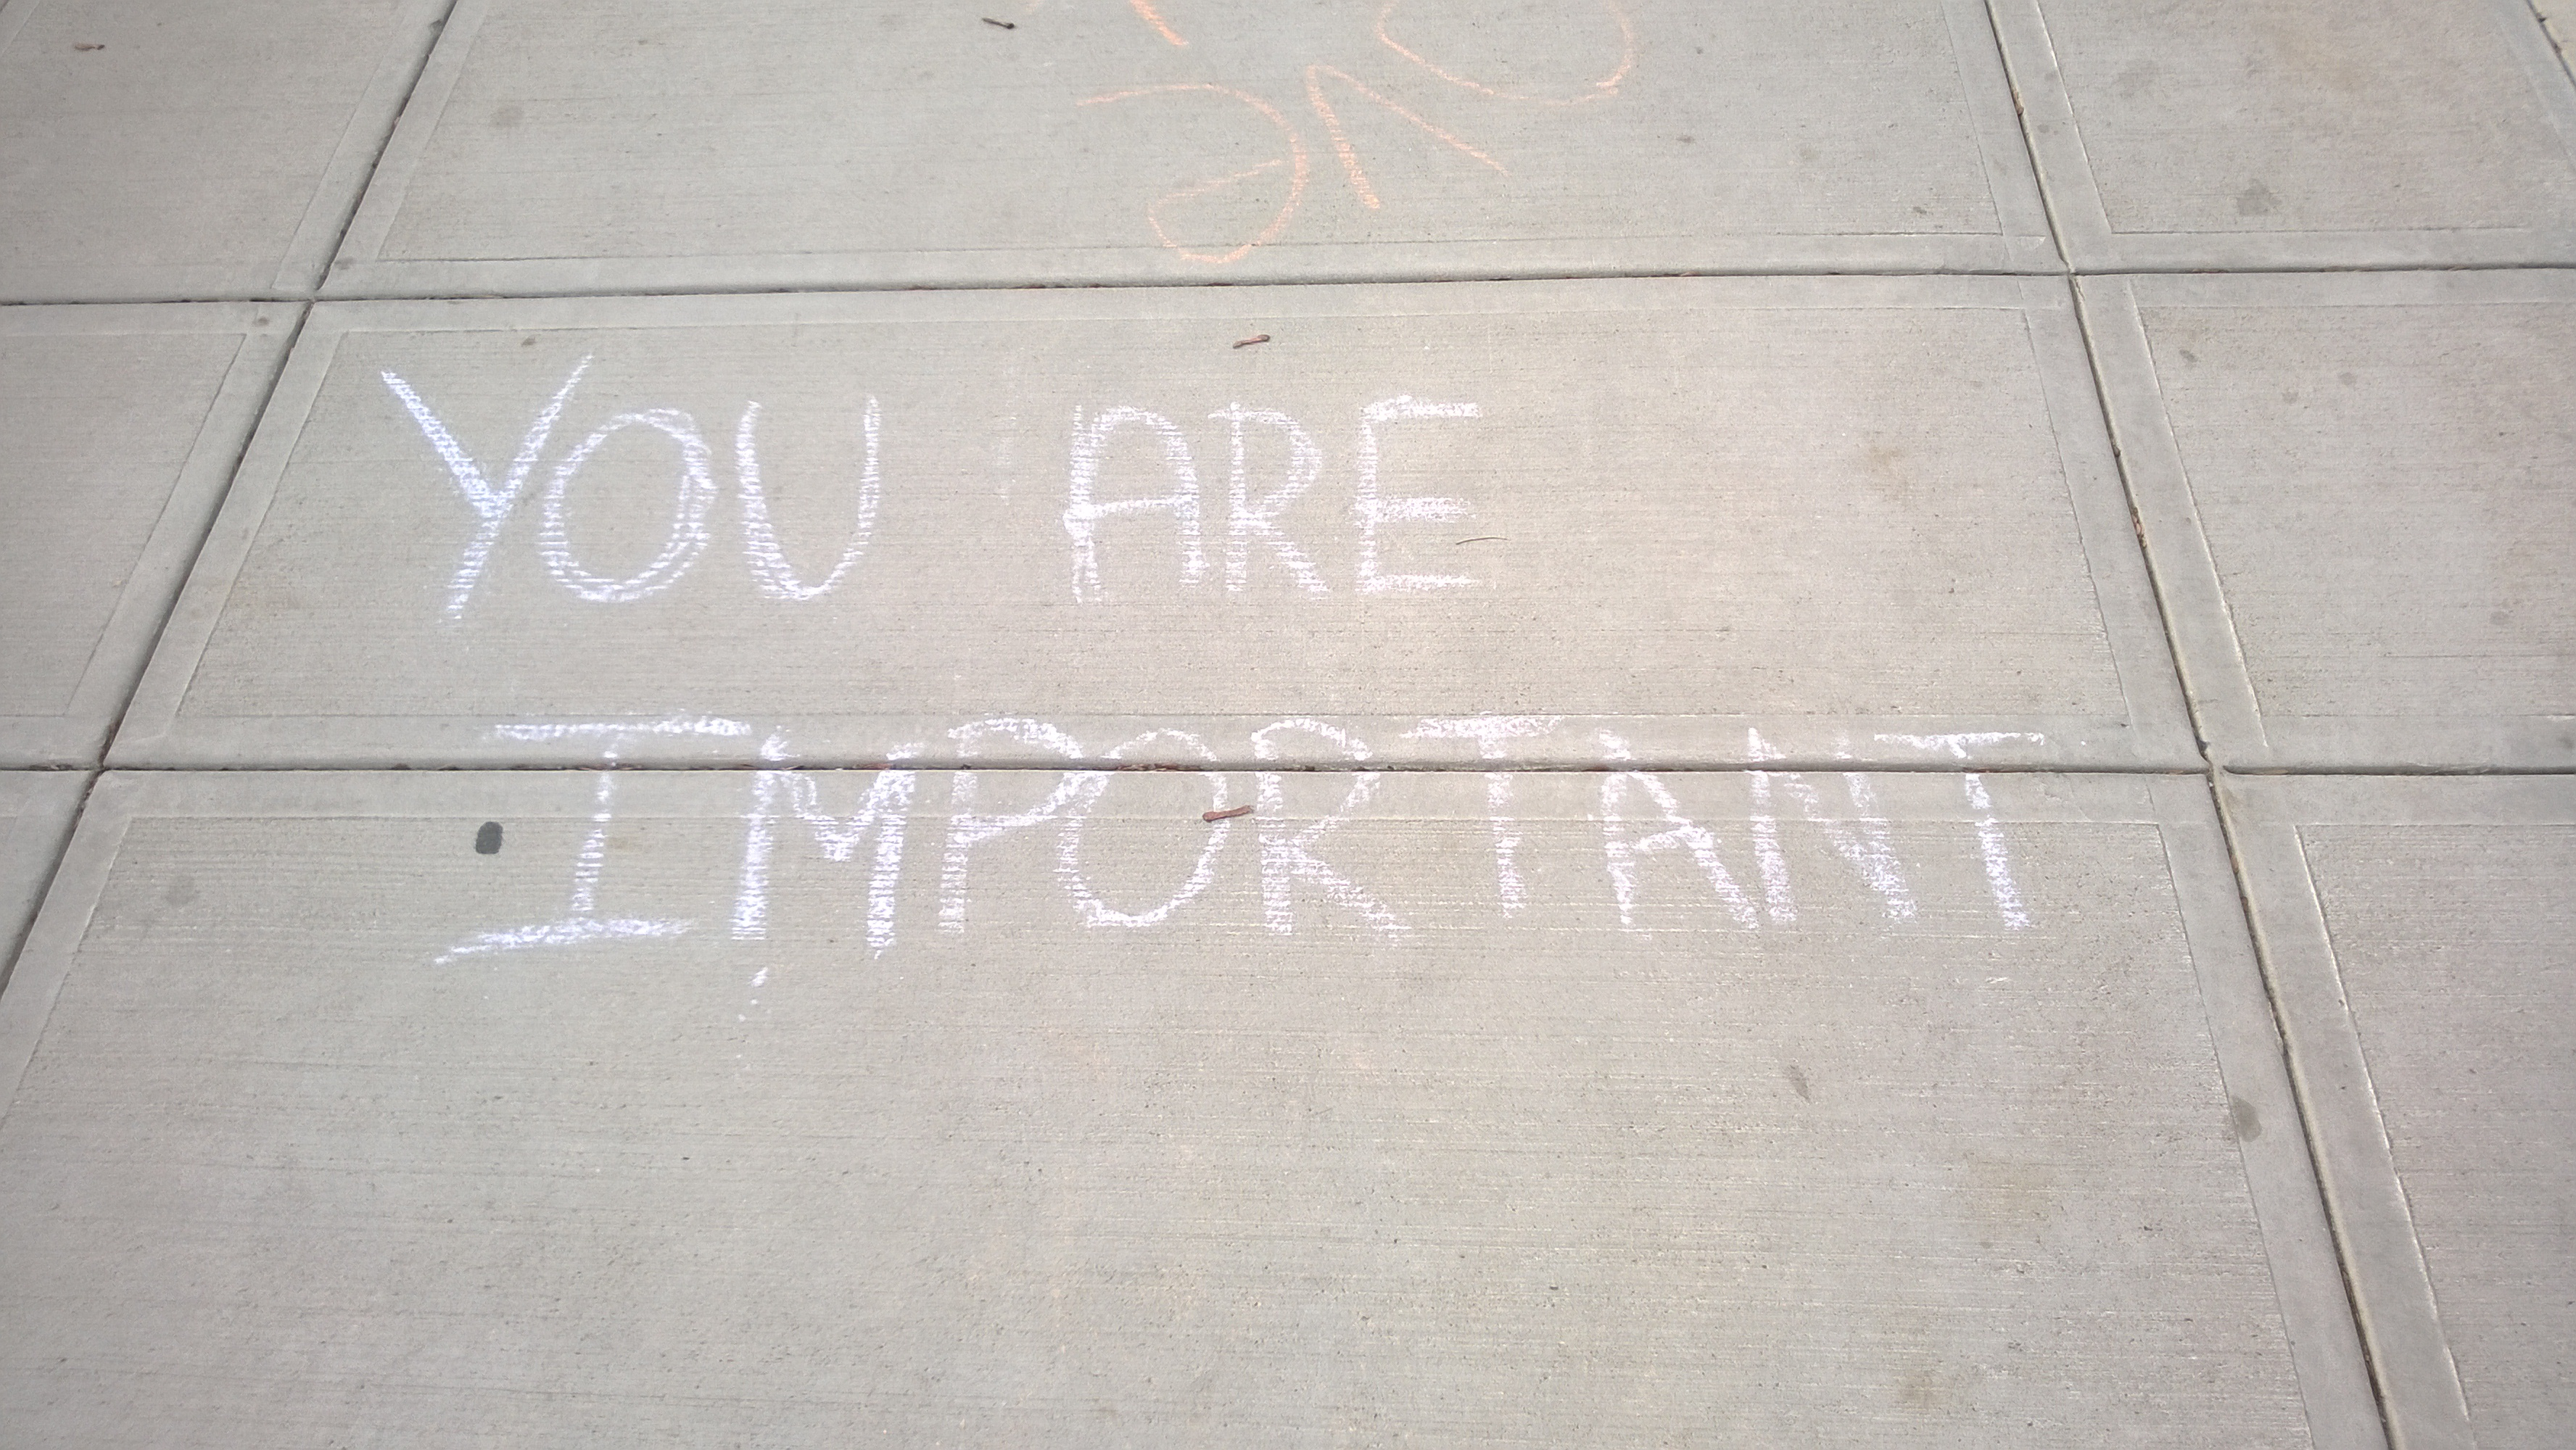 sidewalk chalk message that says you are important